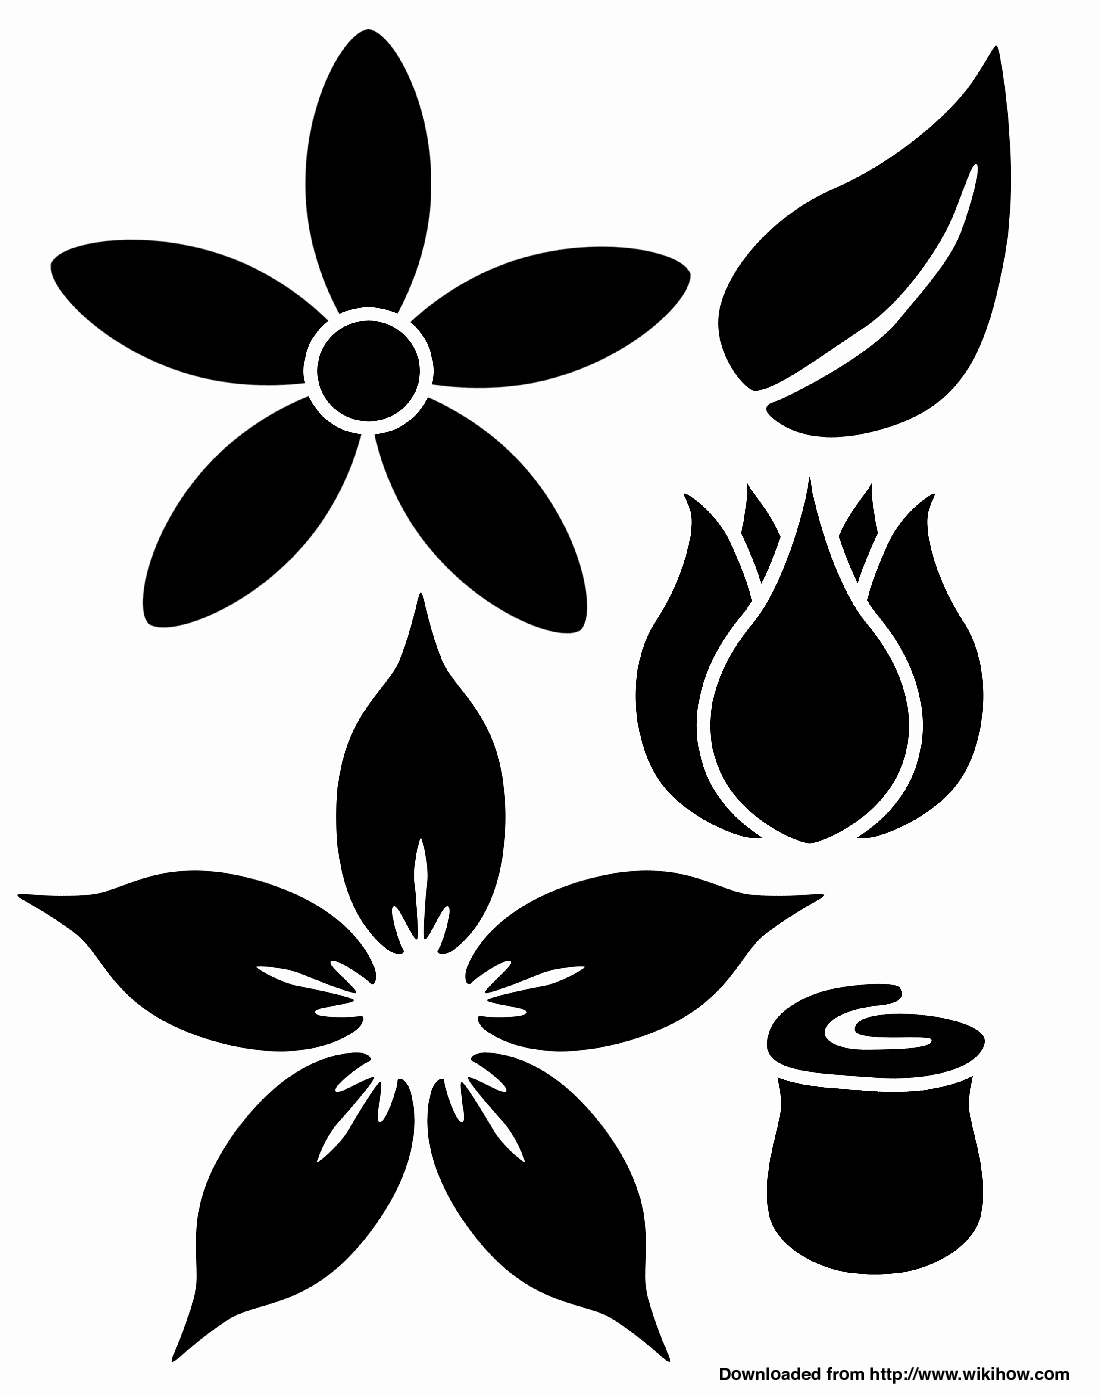 Stencil Templates for Painting Unique Free Stencil Download Free Clip Art Free Clip Art On